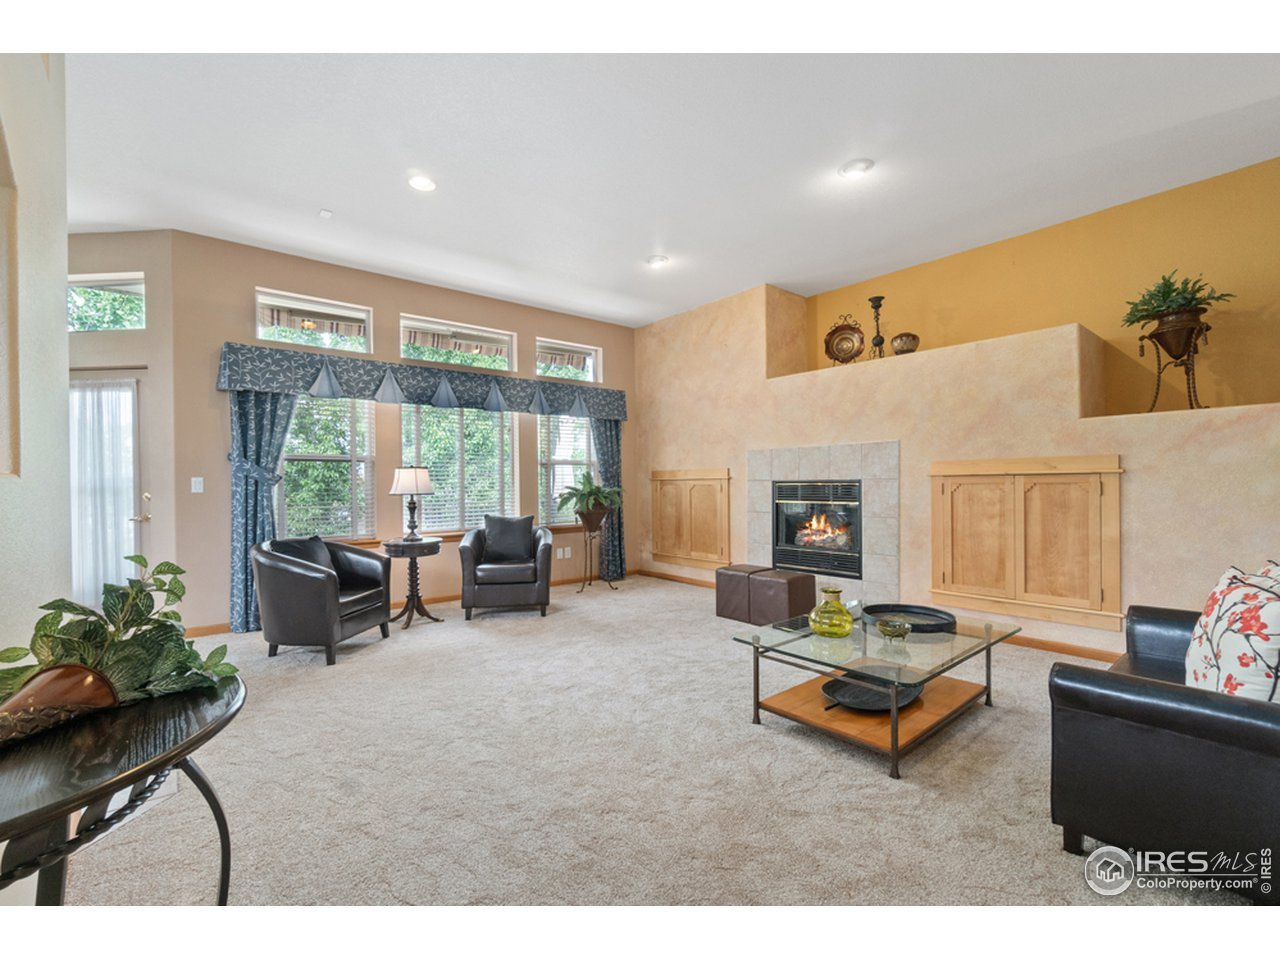 Family/Great Room with Fireplace